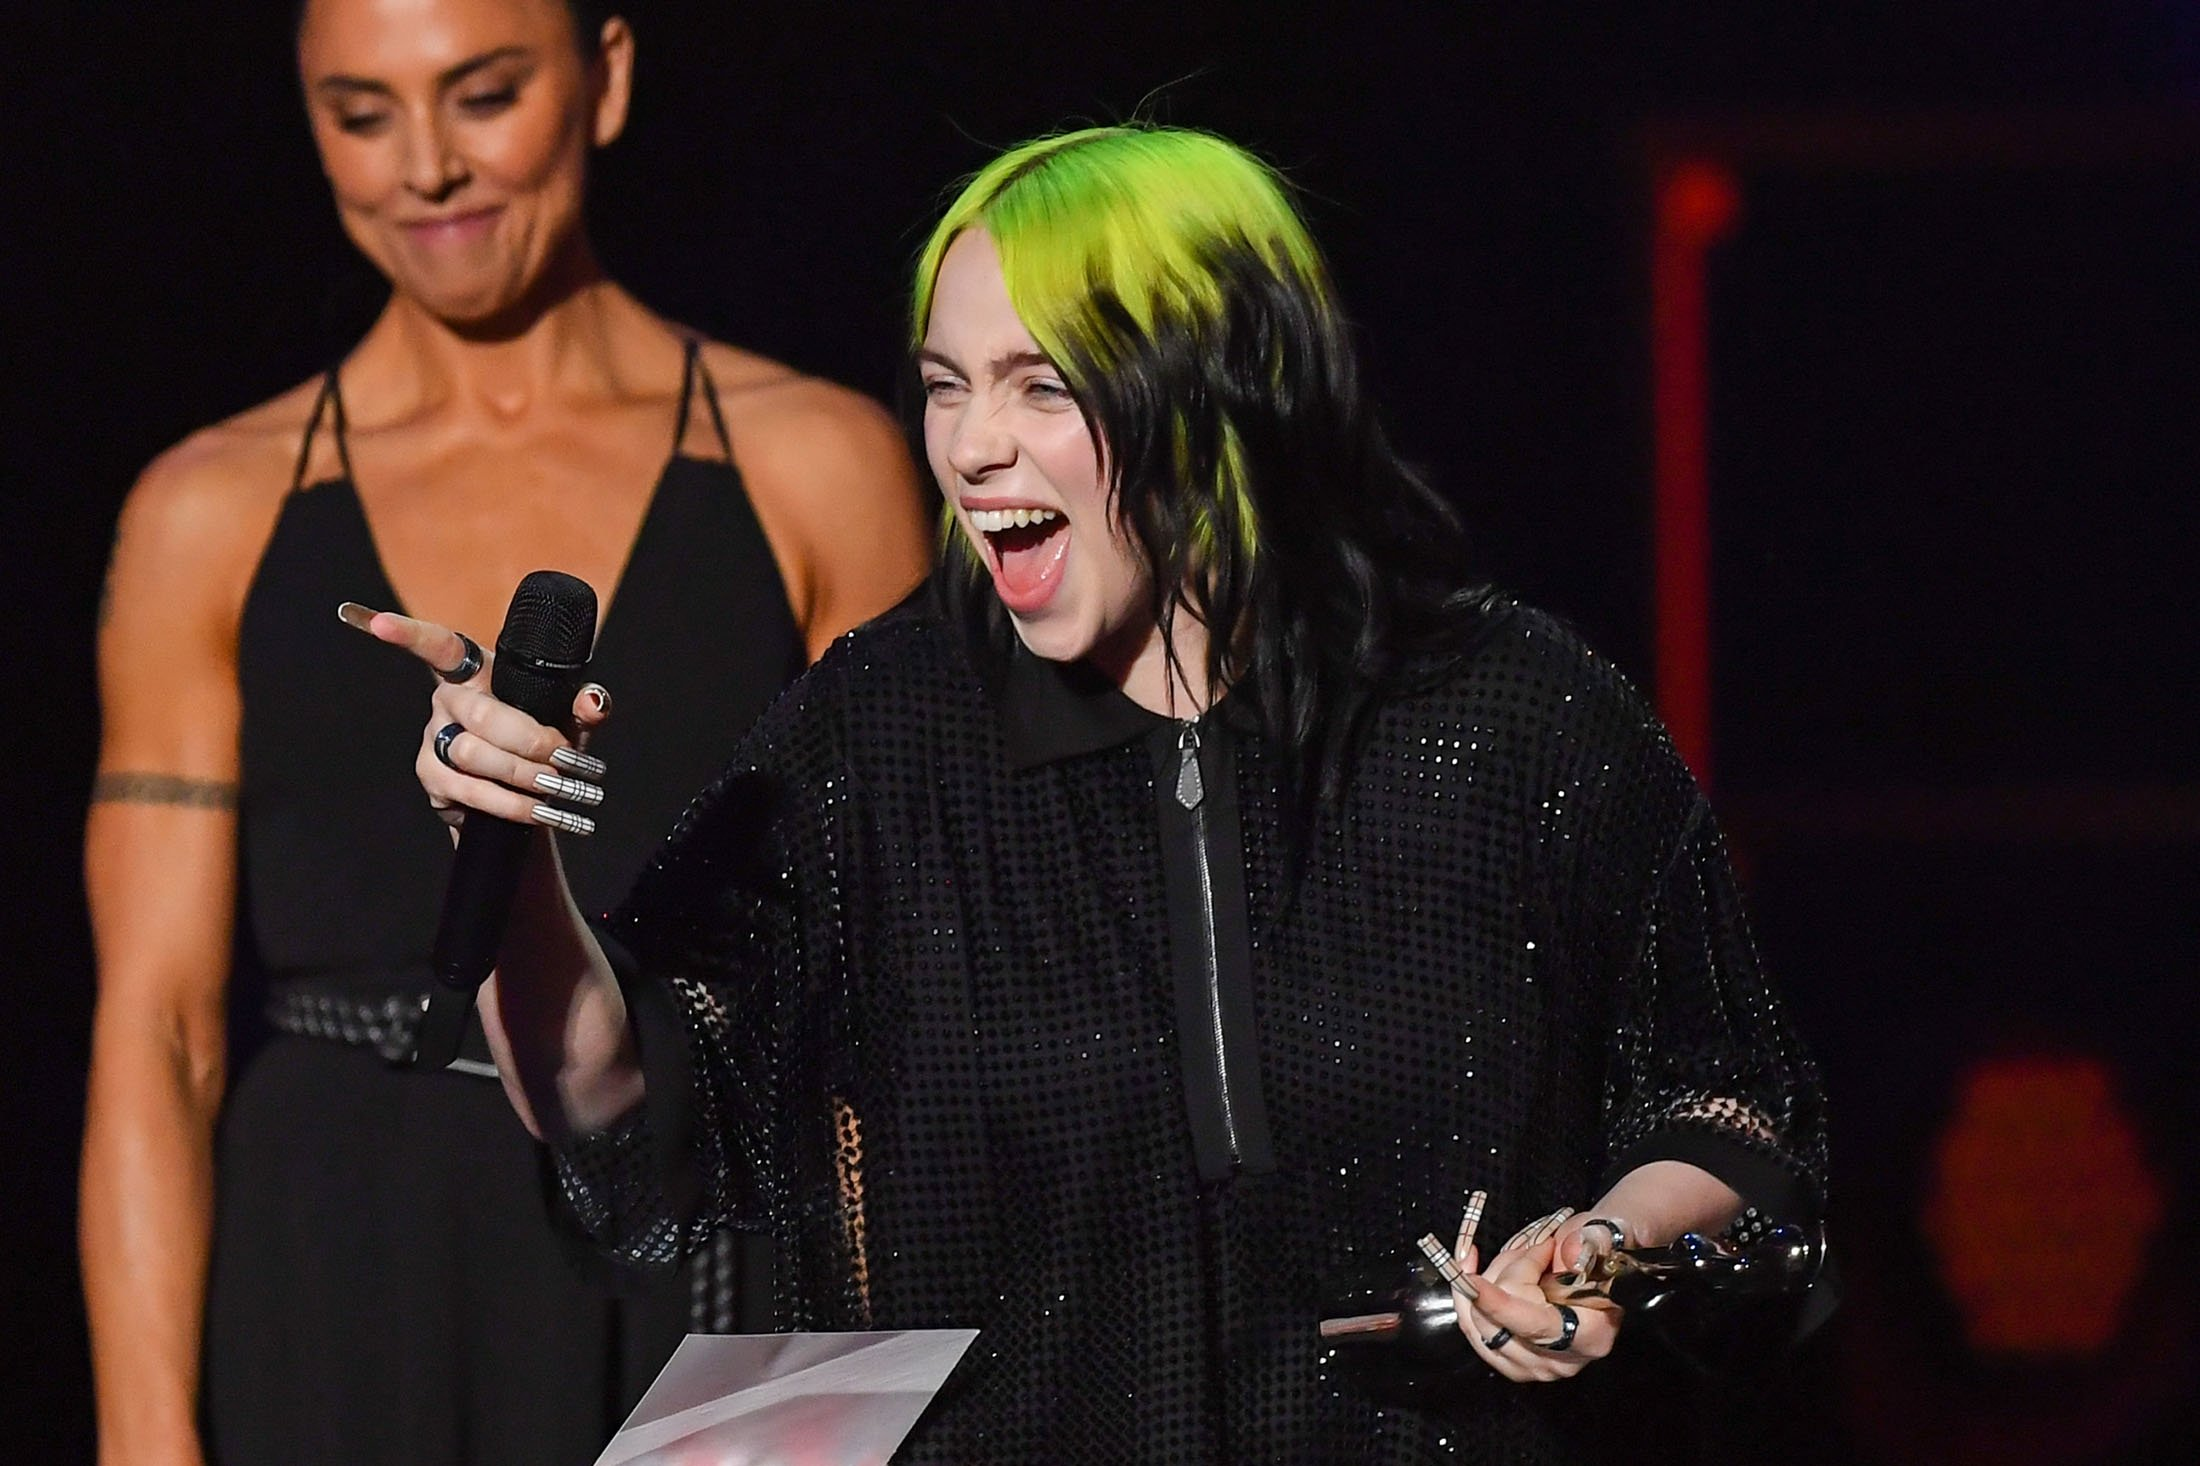 Melanie C (L) presents Billie Eilish with the International Female Solo Artist award during the BRIT Awards 2020 at The O2 Arena in London, England, Feb. 18, 2020. (Getty Images)